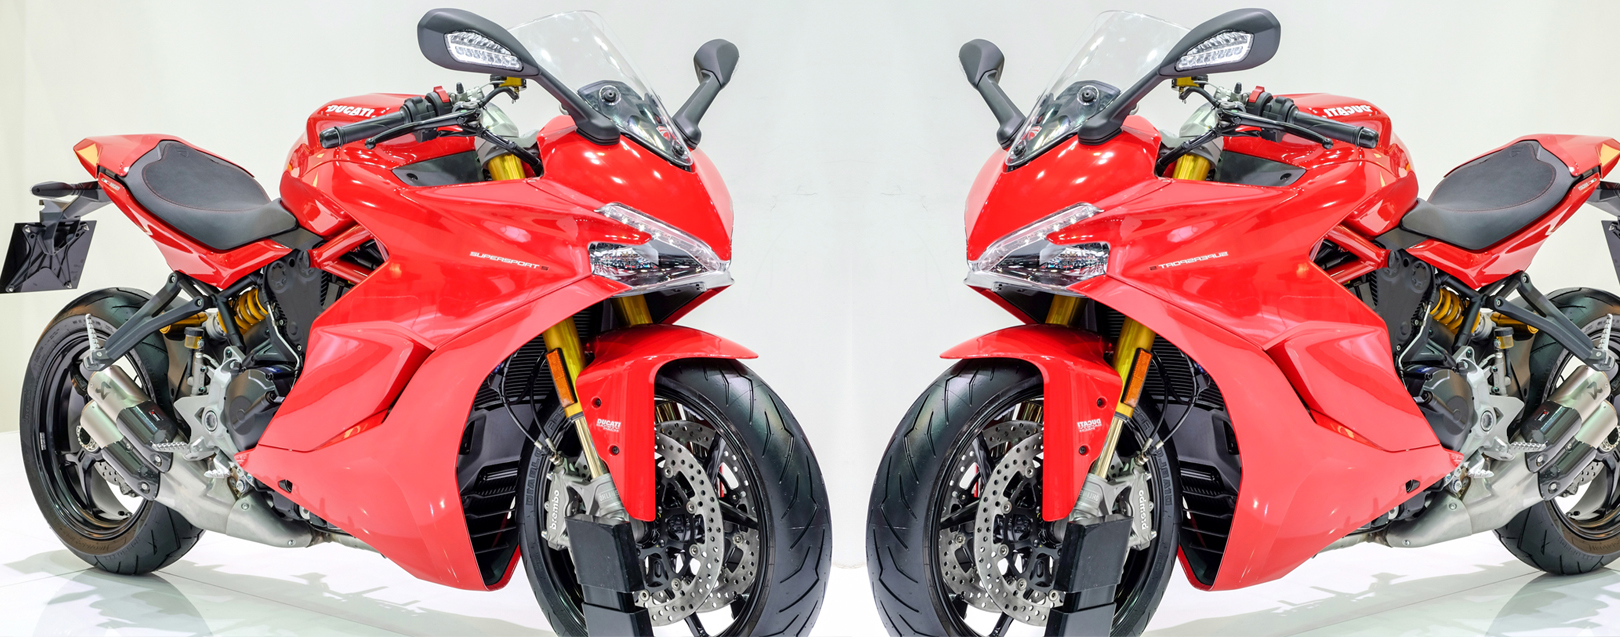 Royal Enfield to bid nearly $2bn for Ducati India